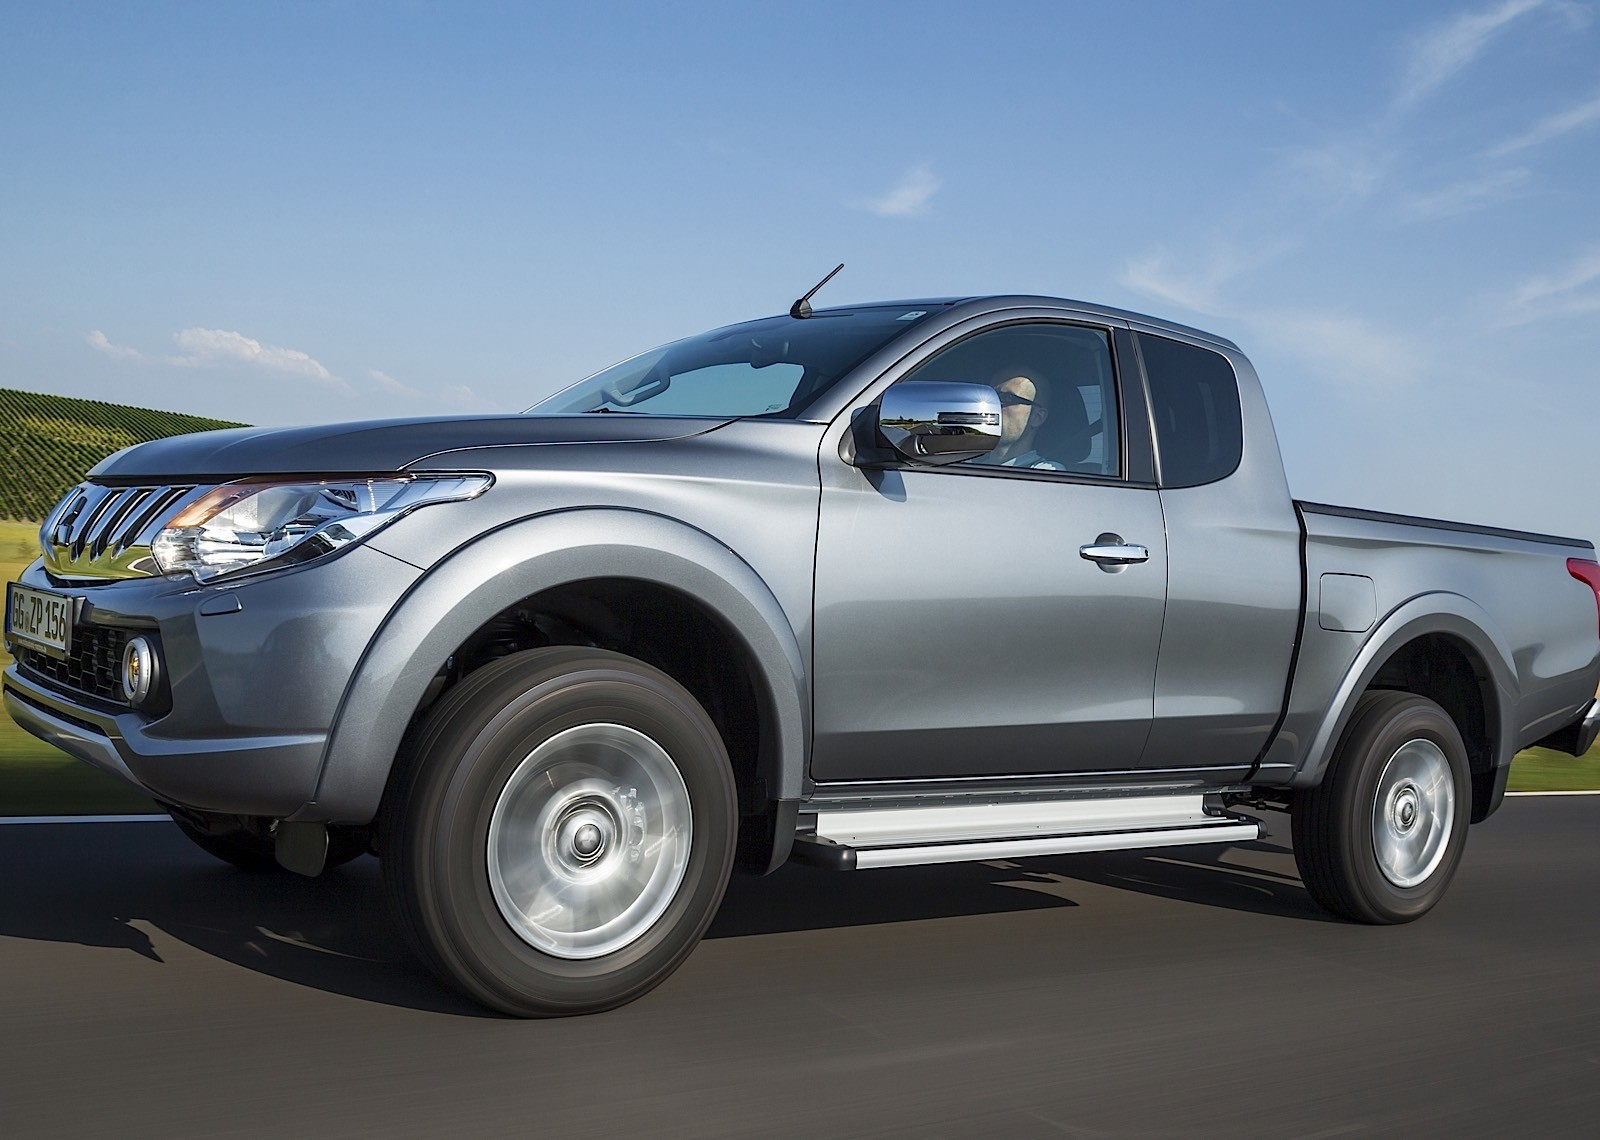 2019 Mitsubishi L200 Club Cab photo - 6